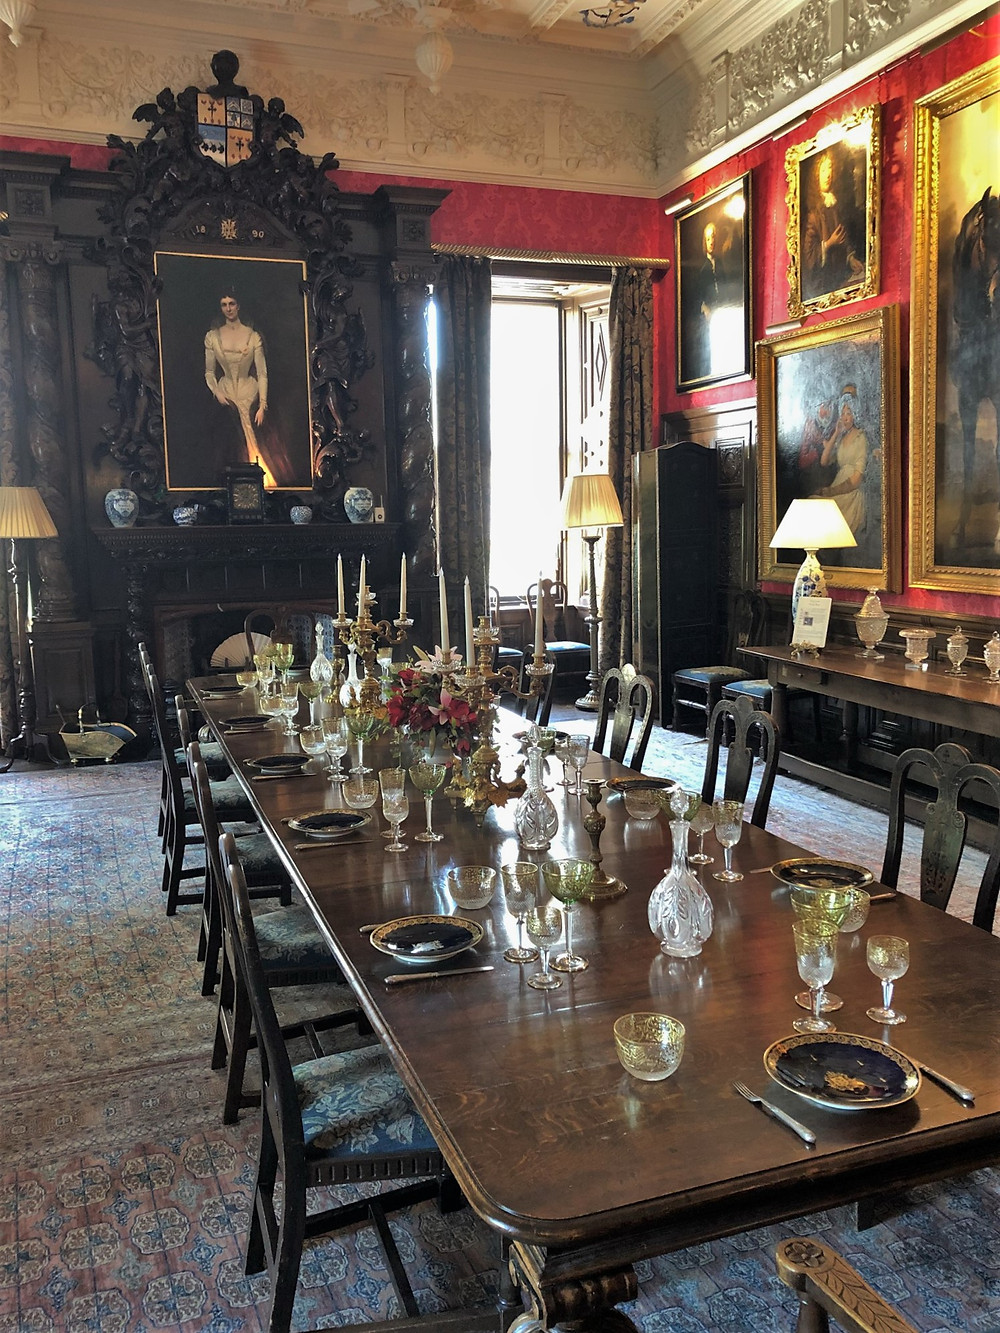 Dining room table in the family dining room in Fyvie Castle in Aberdeenshire, Scotland